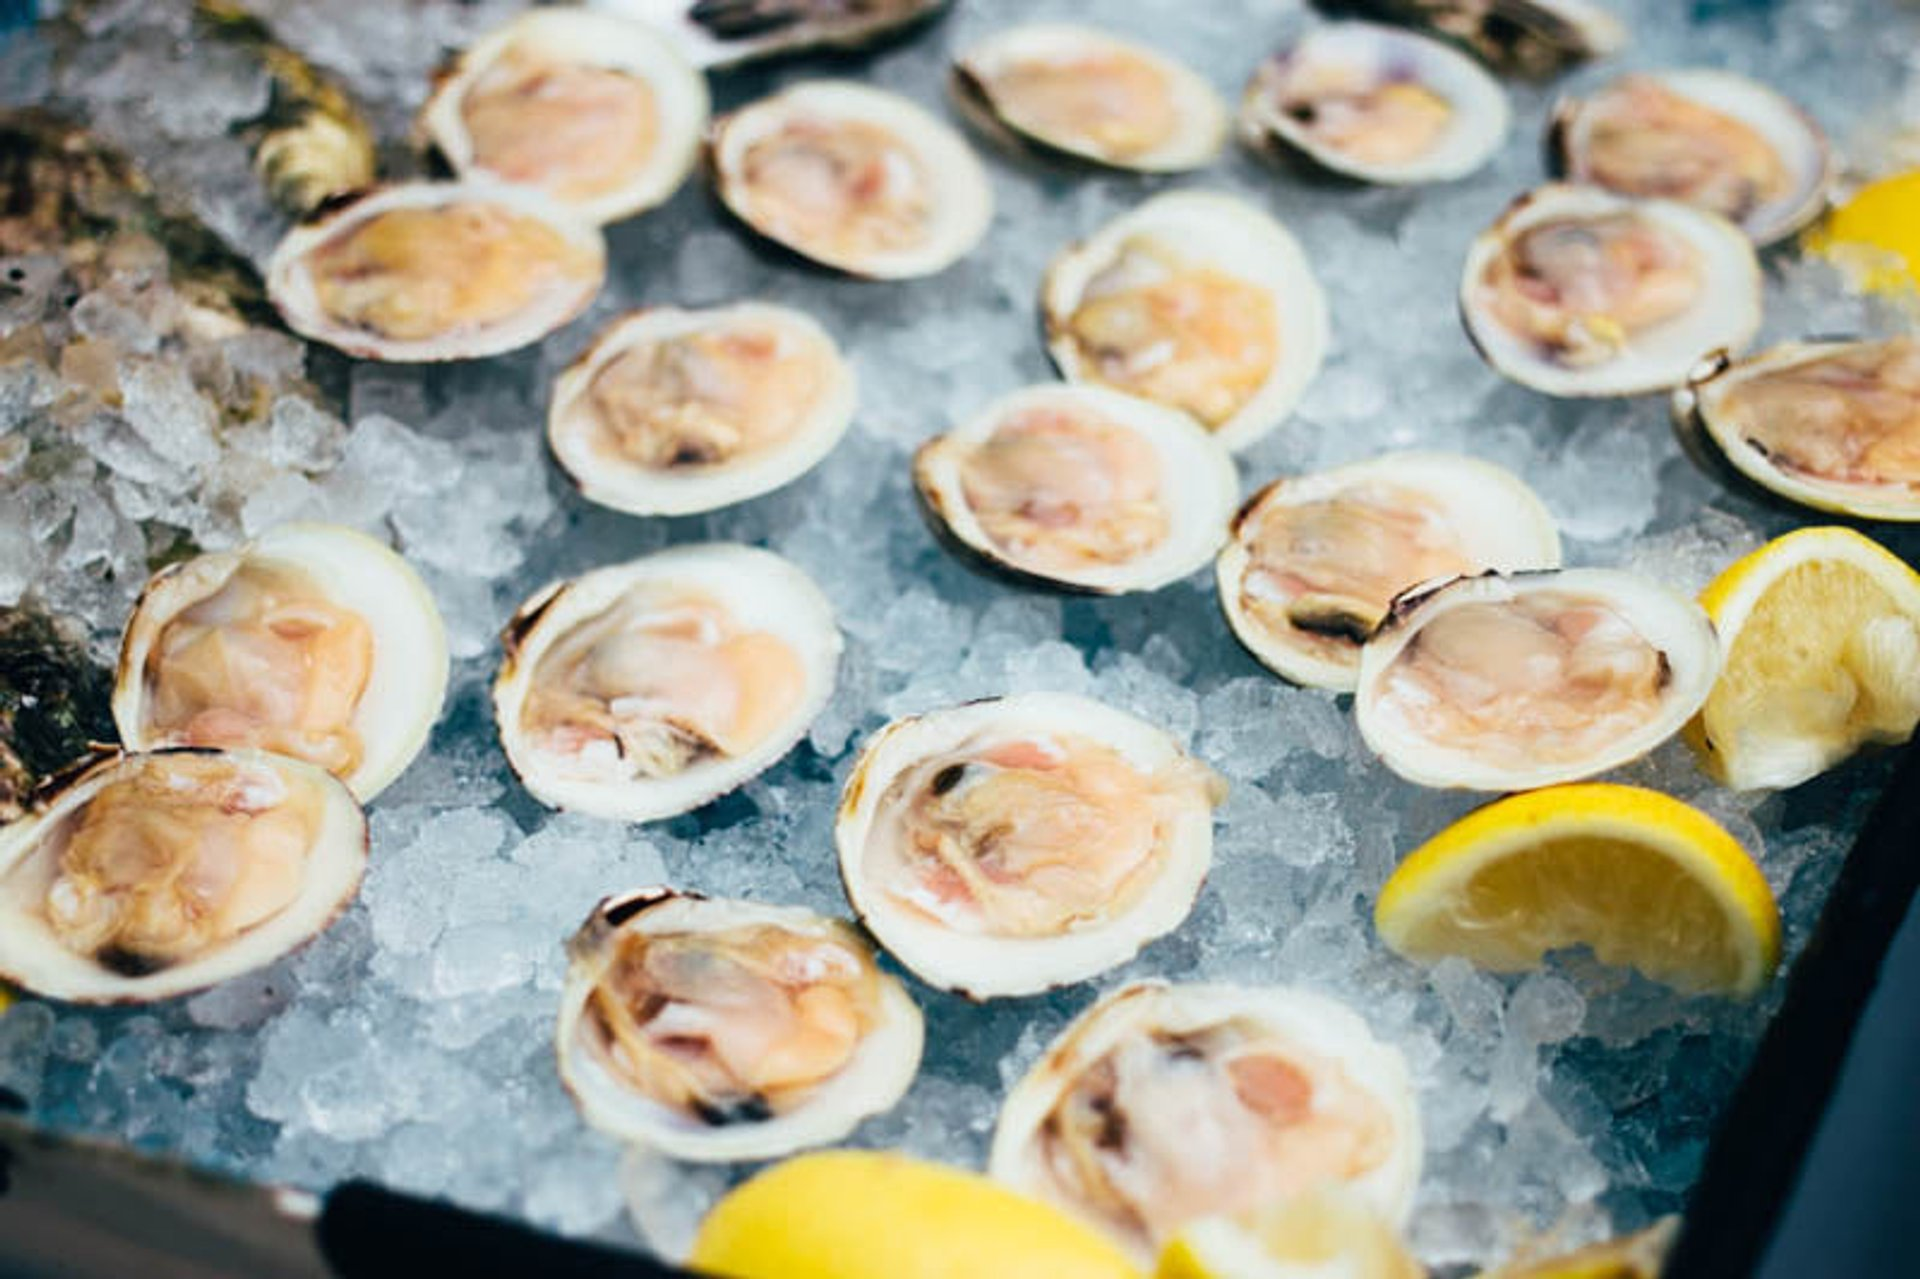 Oysters in Boston 2020 - Best Time